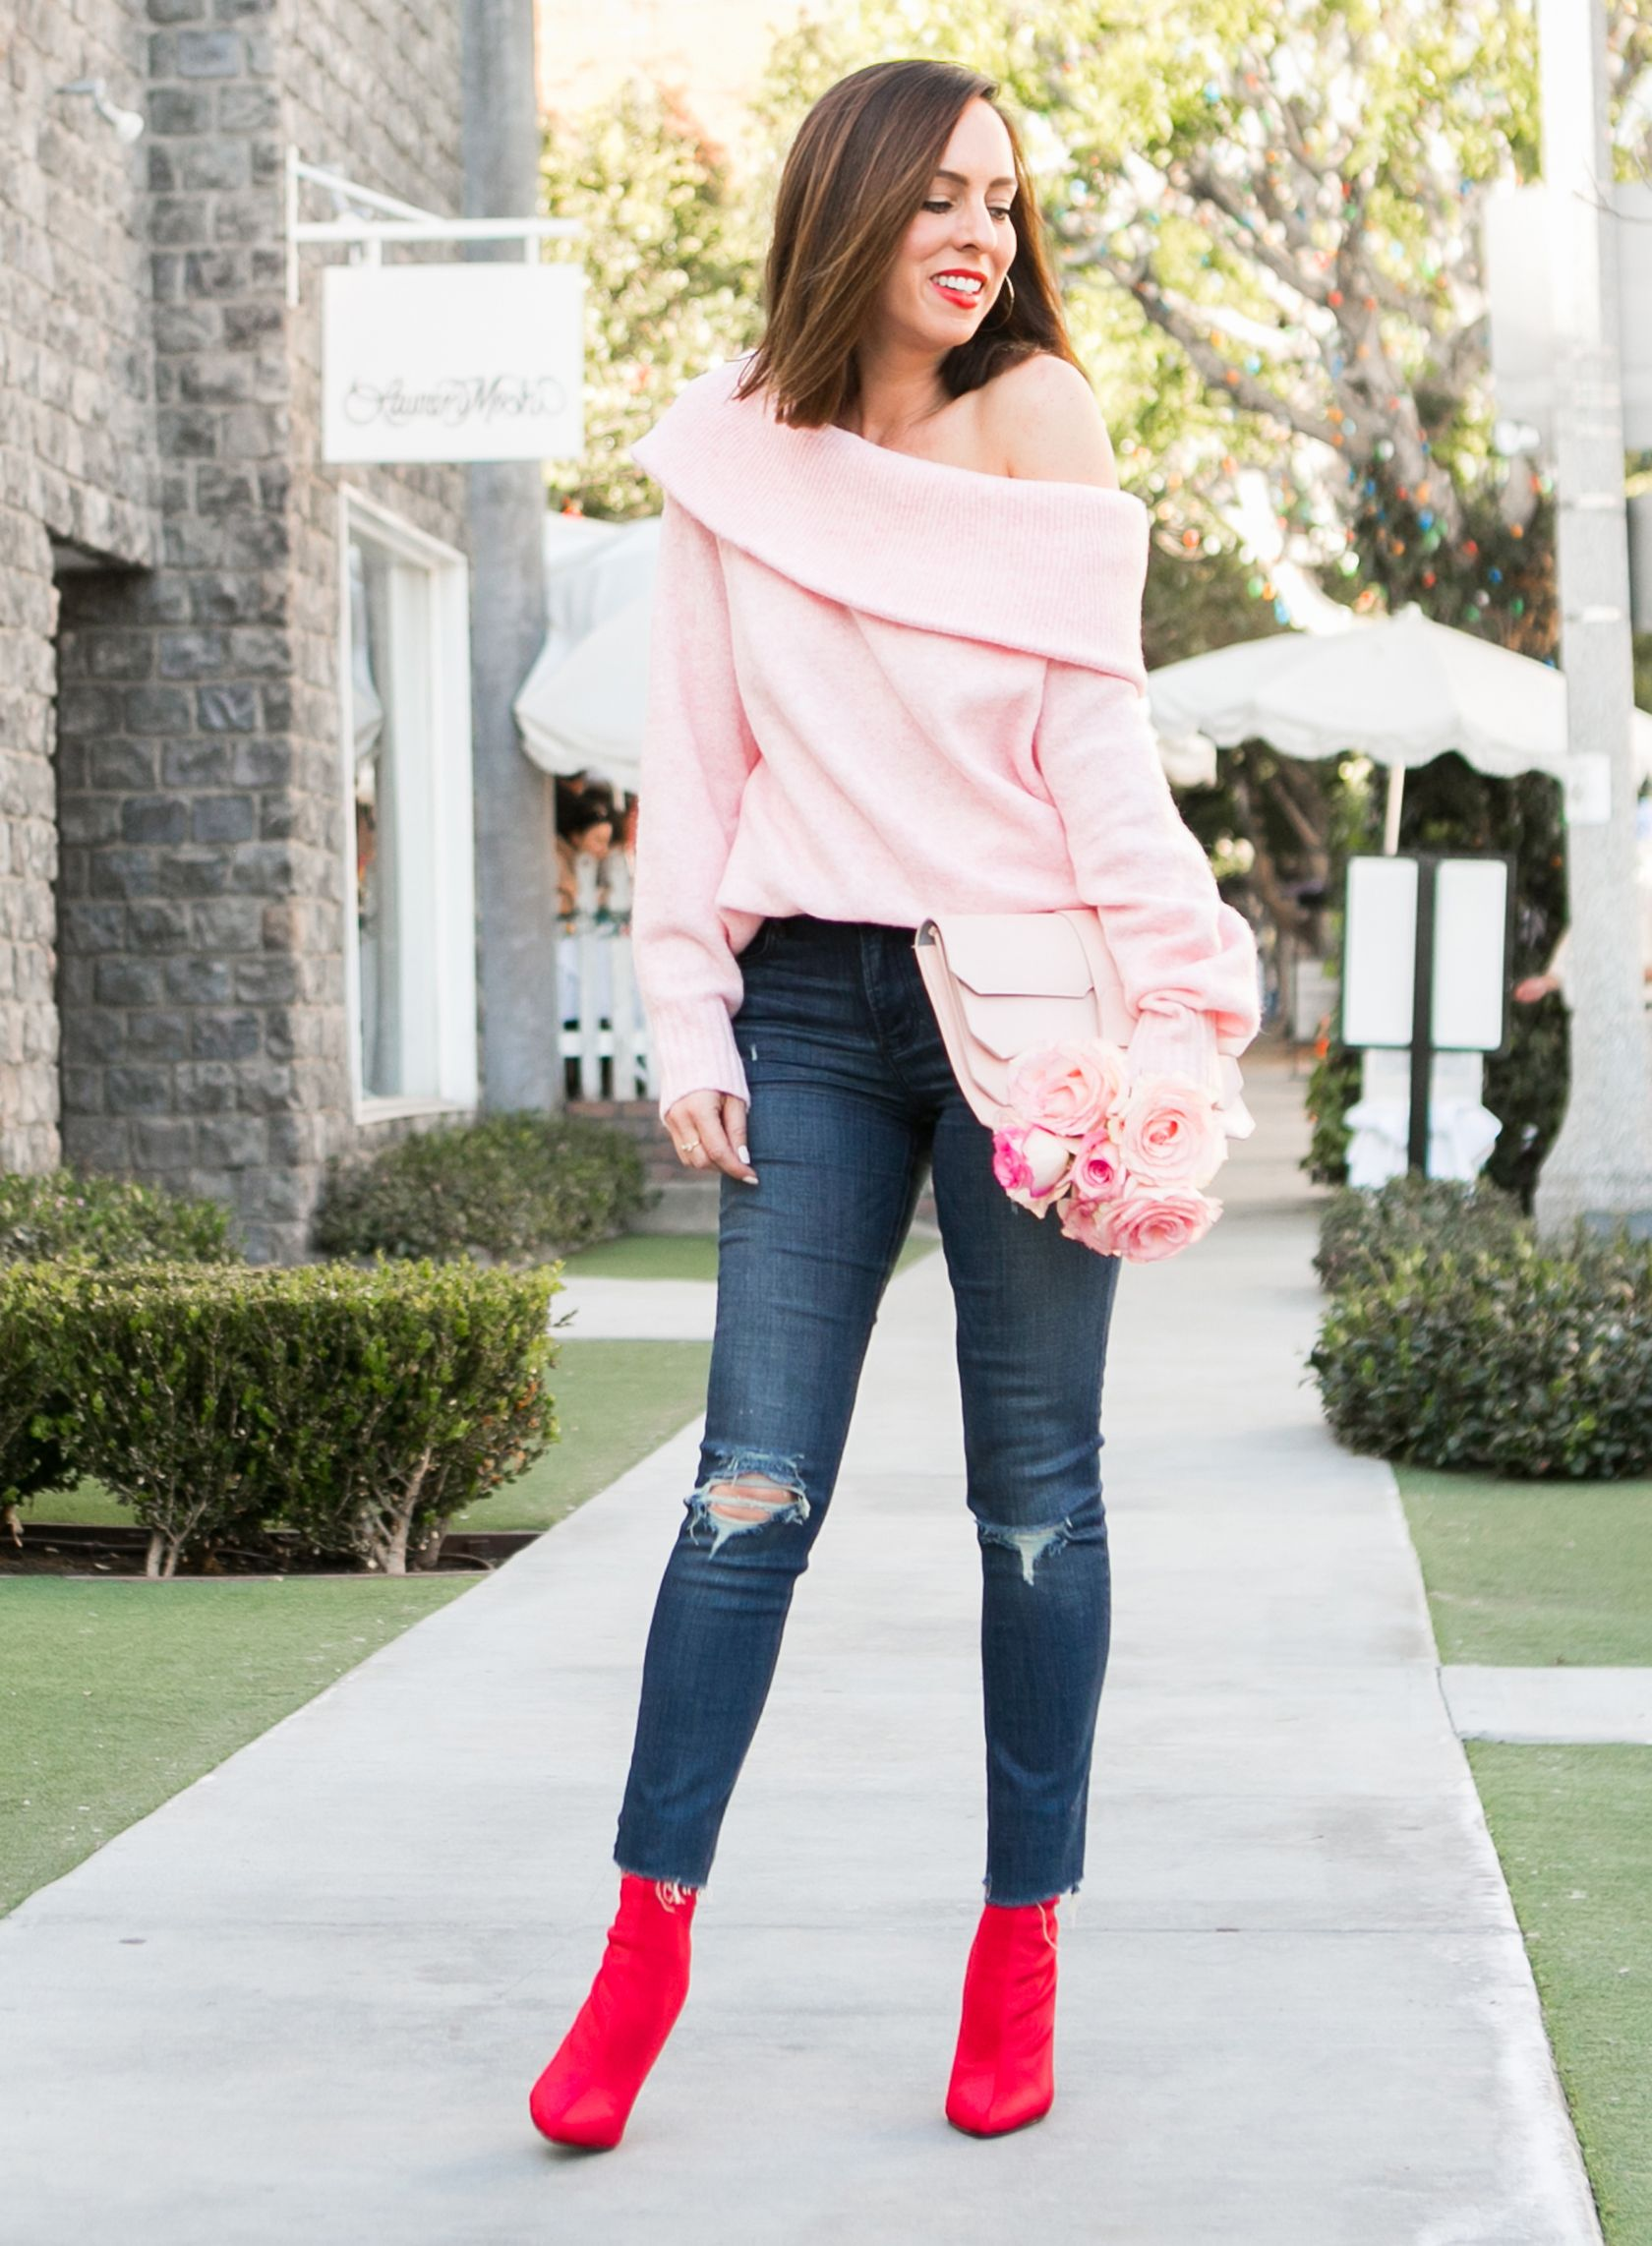 b571e7ac545202 Sydne Style gives valentines day outfit ideas wearing pink and red in sock  booties. Shop the look on the blog!  pink  red  jeans  booties  outfits